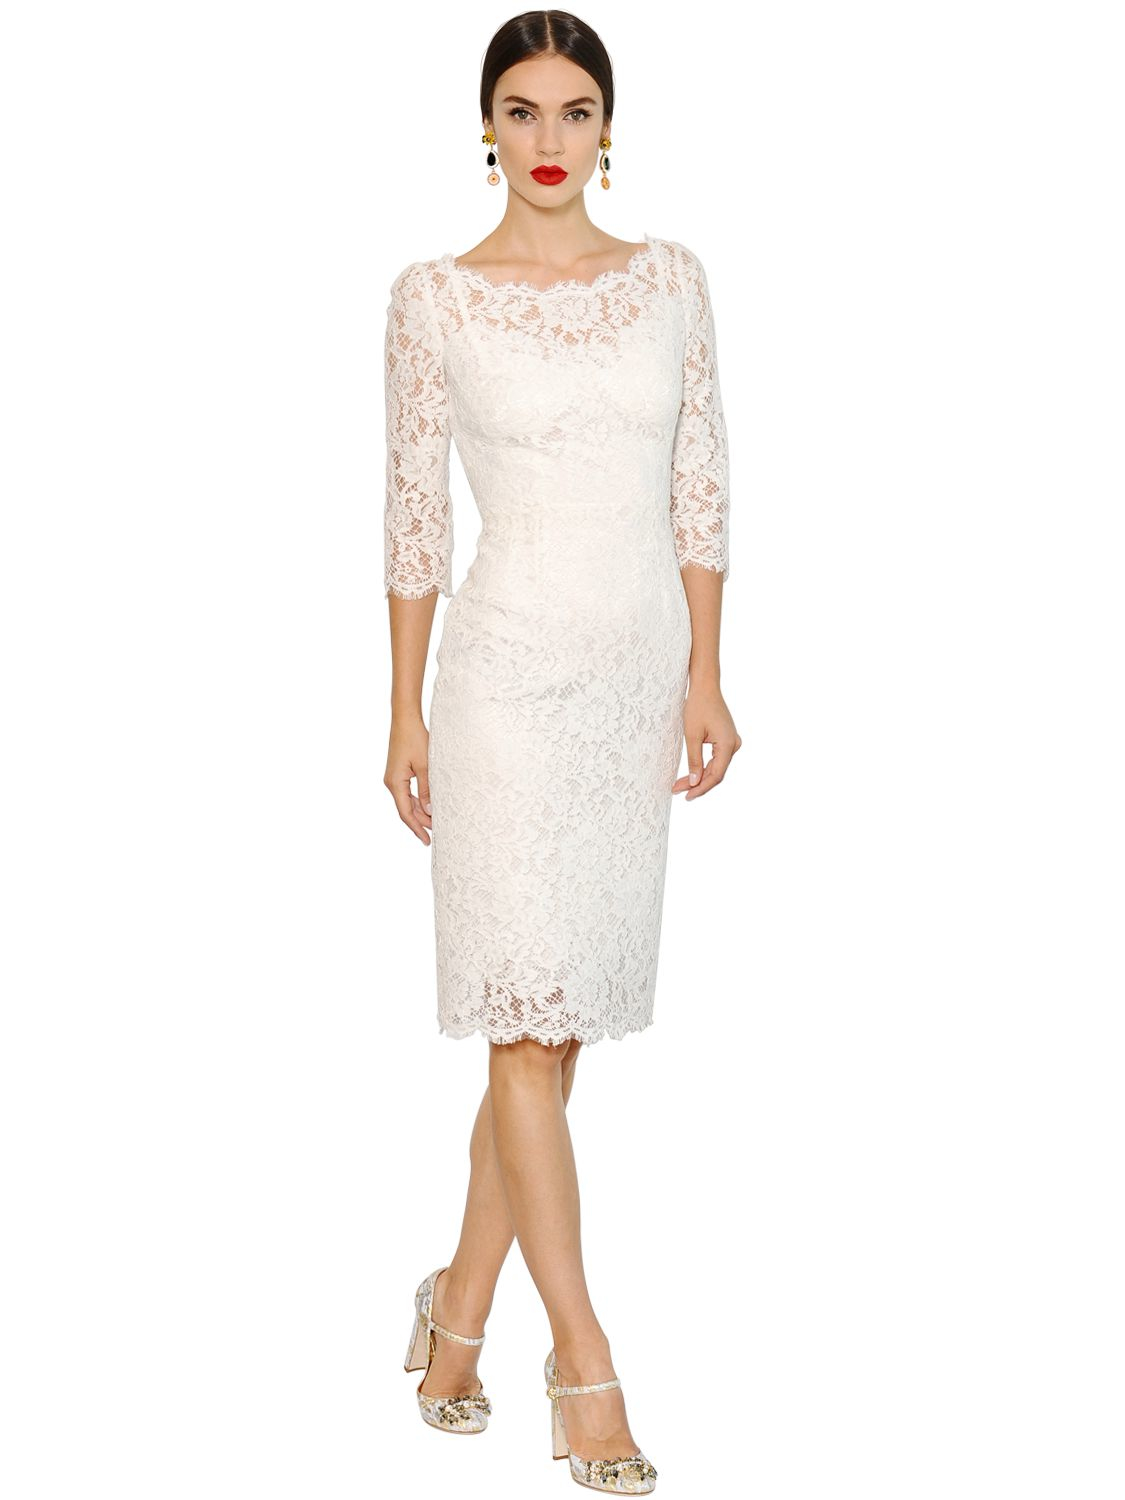 Dolce &amp- gabbana Cordonetto Lace Dress in White - Lyst